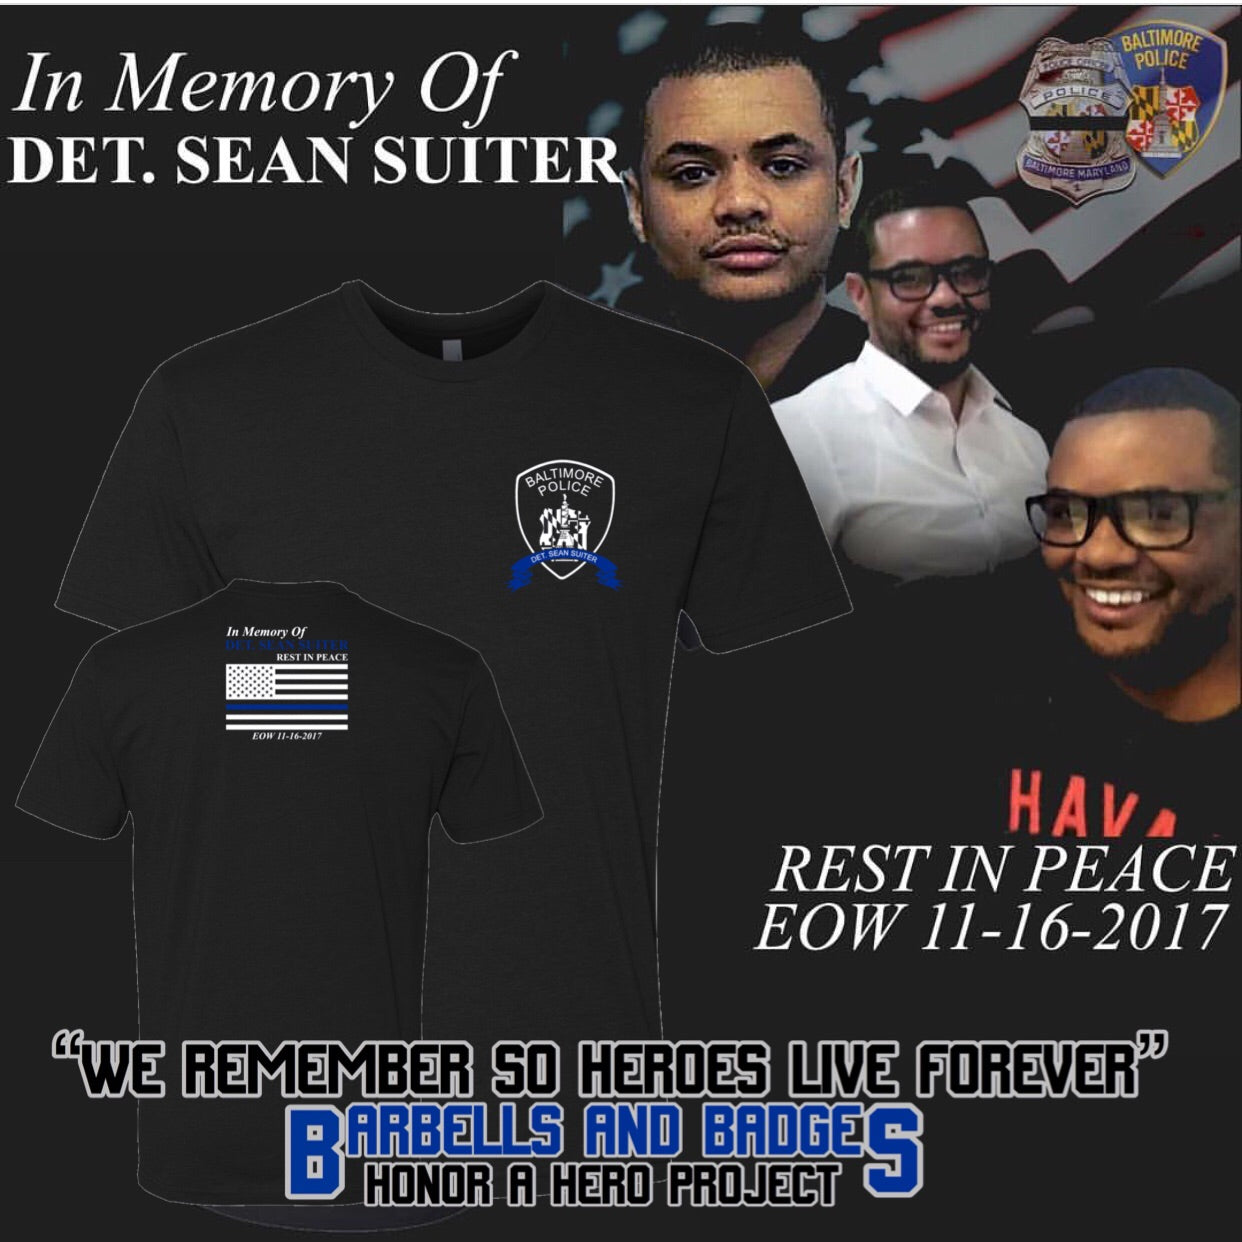 Detective Sean Suiter Official LS Memorial Shirt